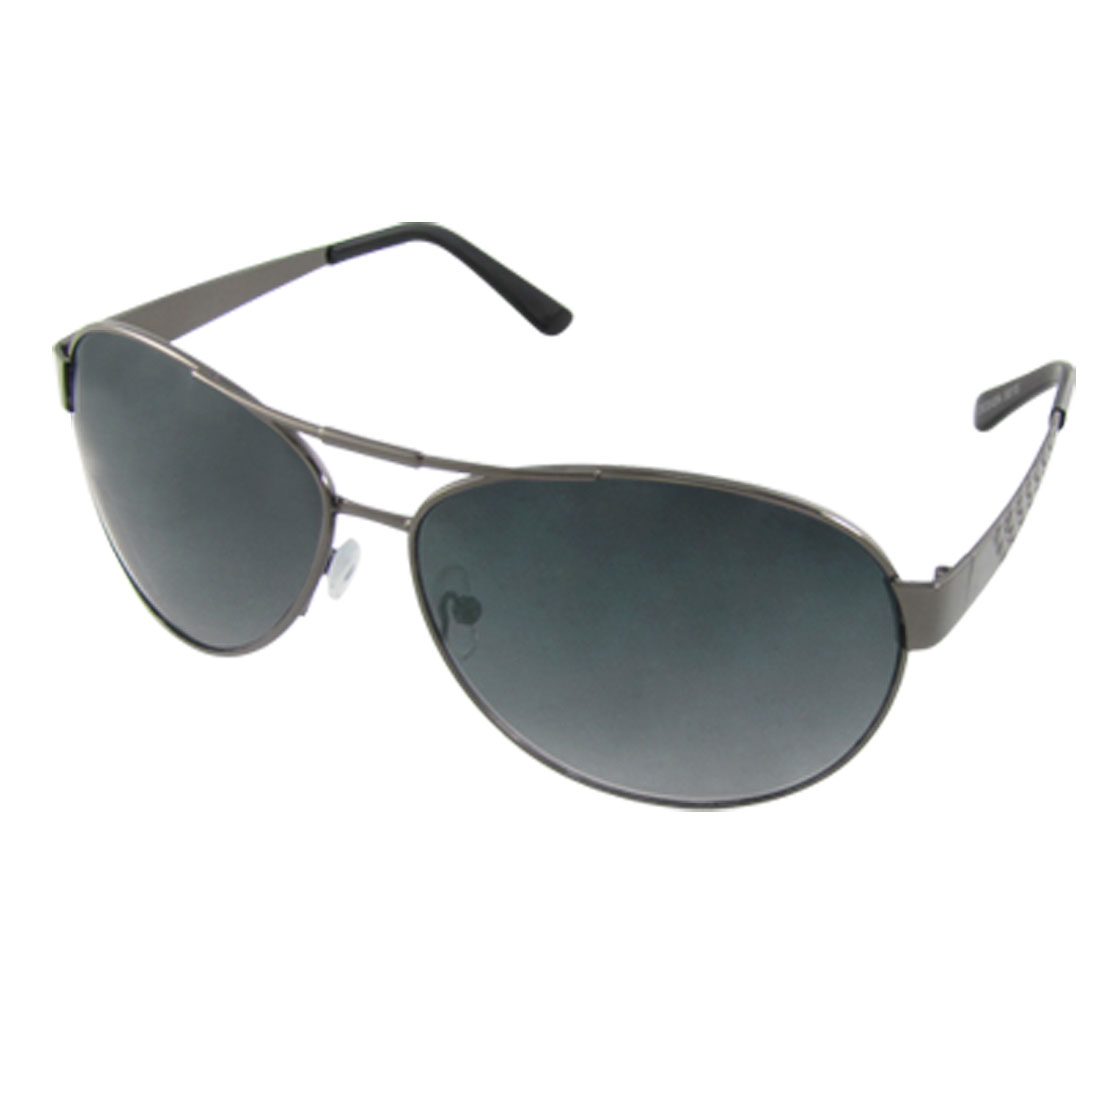 Black Plastic Coated Arm Dark Gray Frame Sunglasses